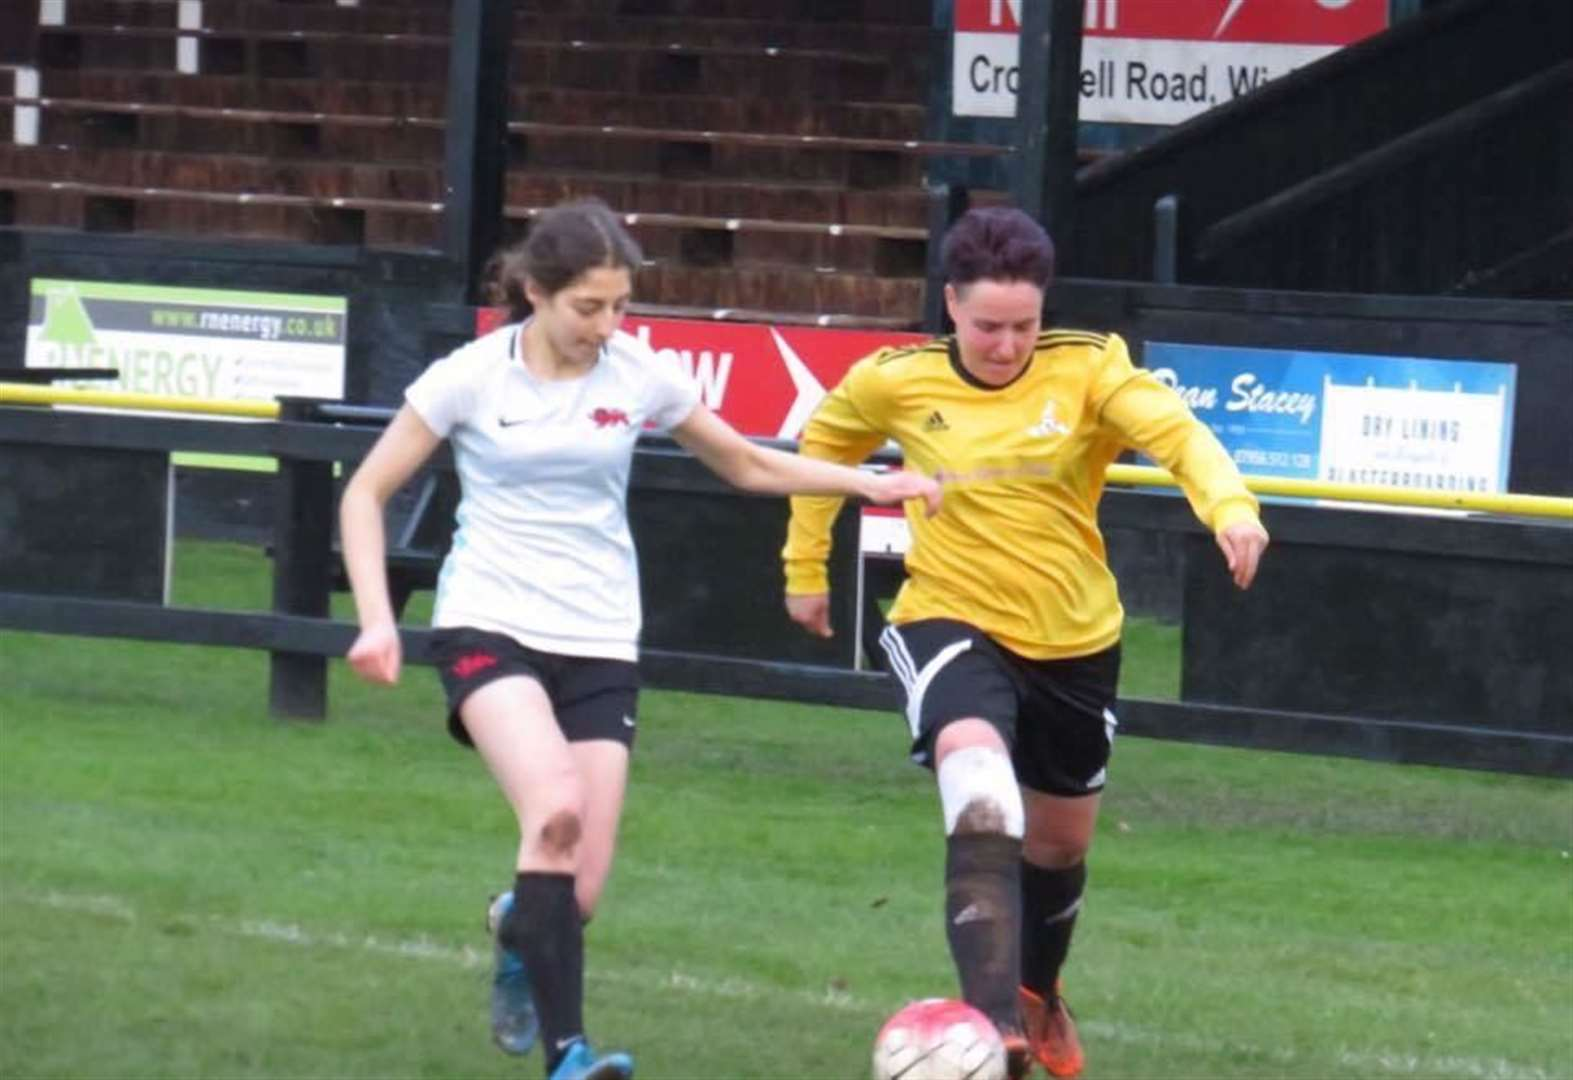 Ladies' football: Hares make it four wins on the bounce after derby